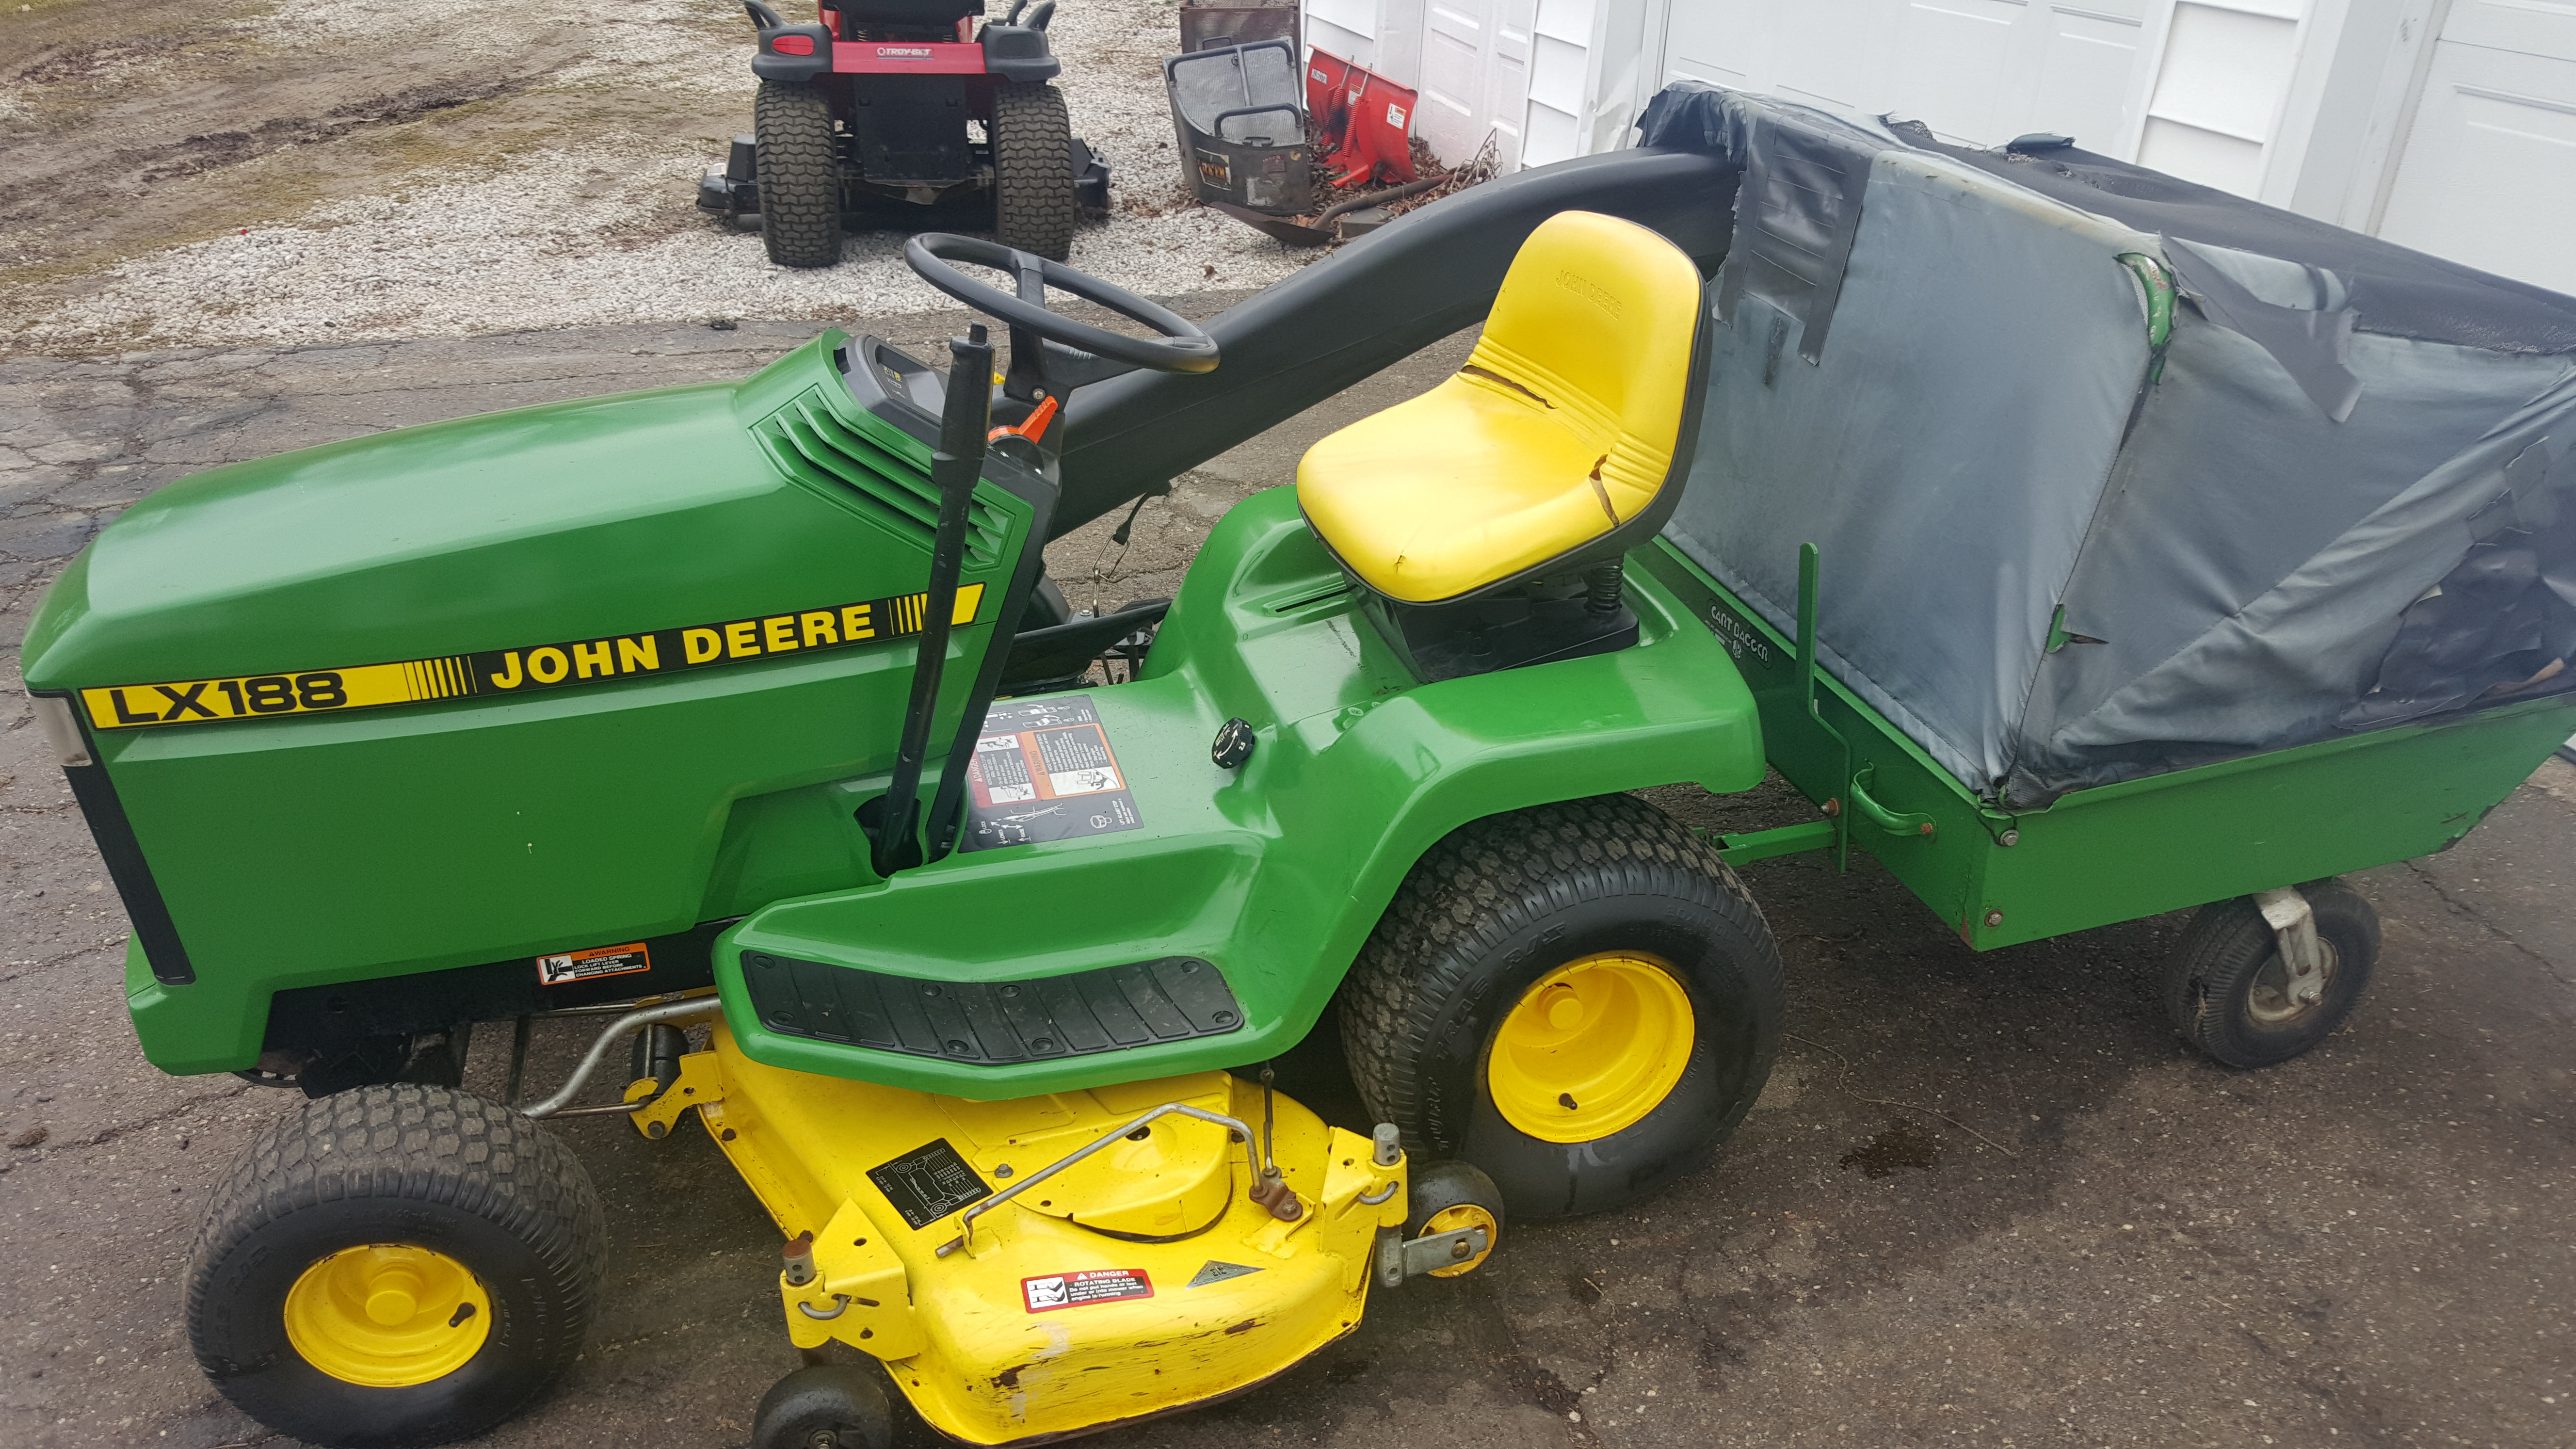 48in John Deere Lx188 Heavy Duty Riding Lawn Tractor W Bagger Liquid Cooled Kawasaki Mint Shape Gsa Equipment New Used Lawn Mowers And Mower Repair Service Canton Akron Wadsworth Ohio